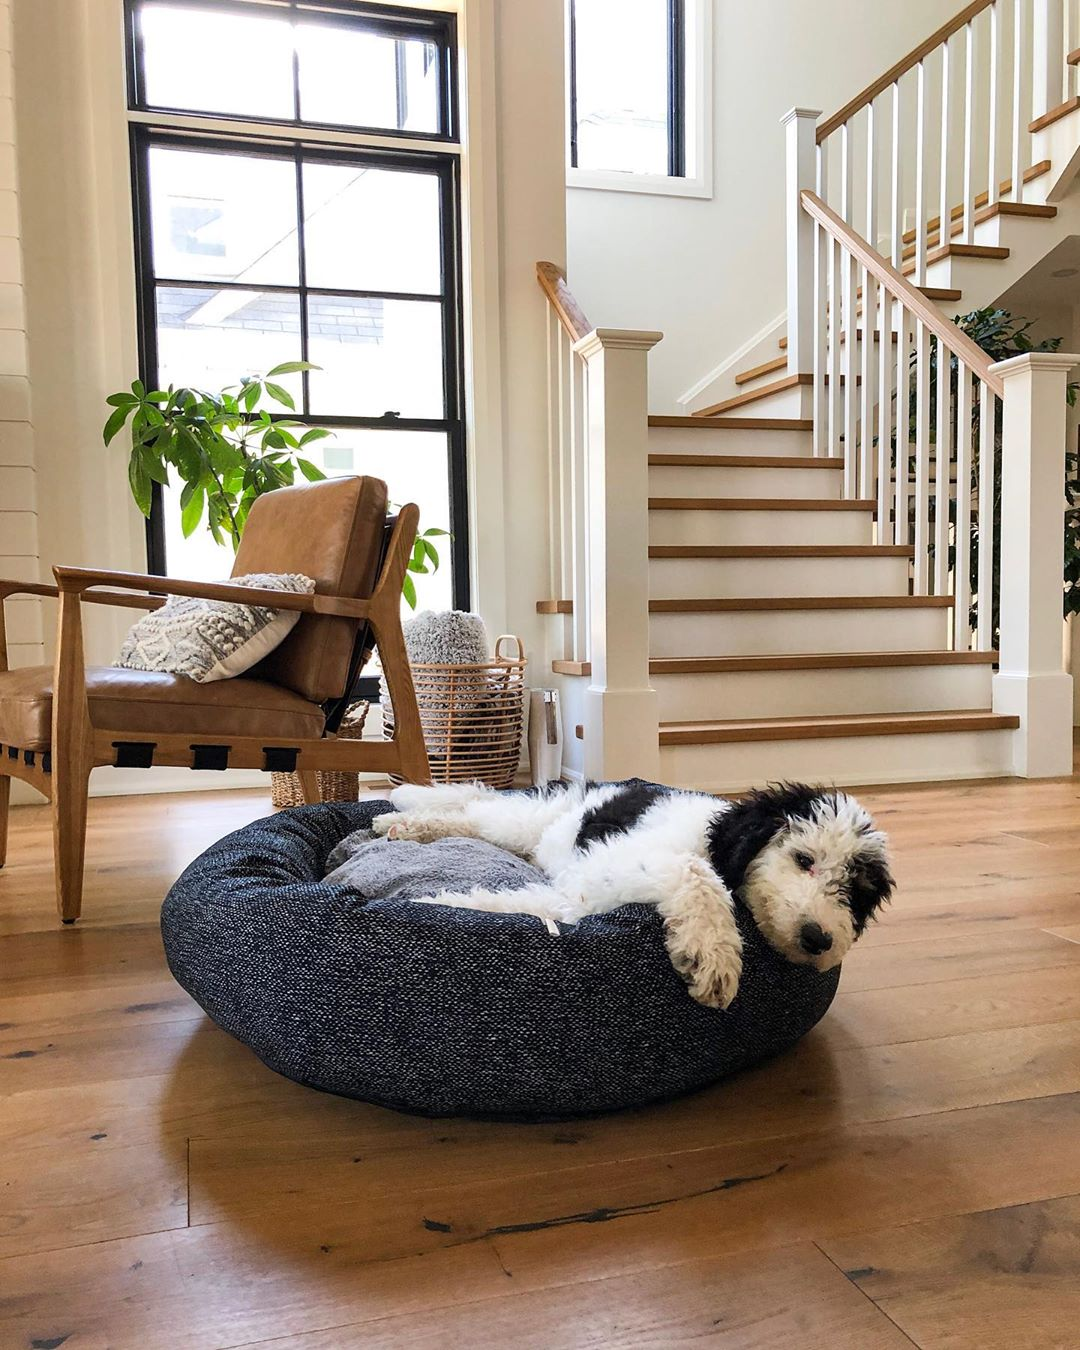 dog lounging in a dog bed in farmhouse living room with black double-hung window behind